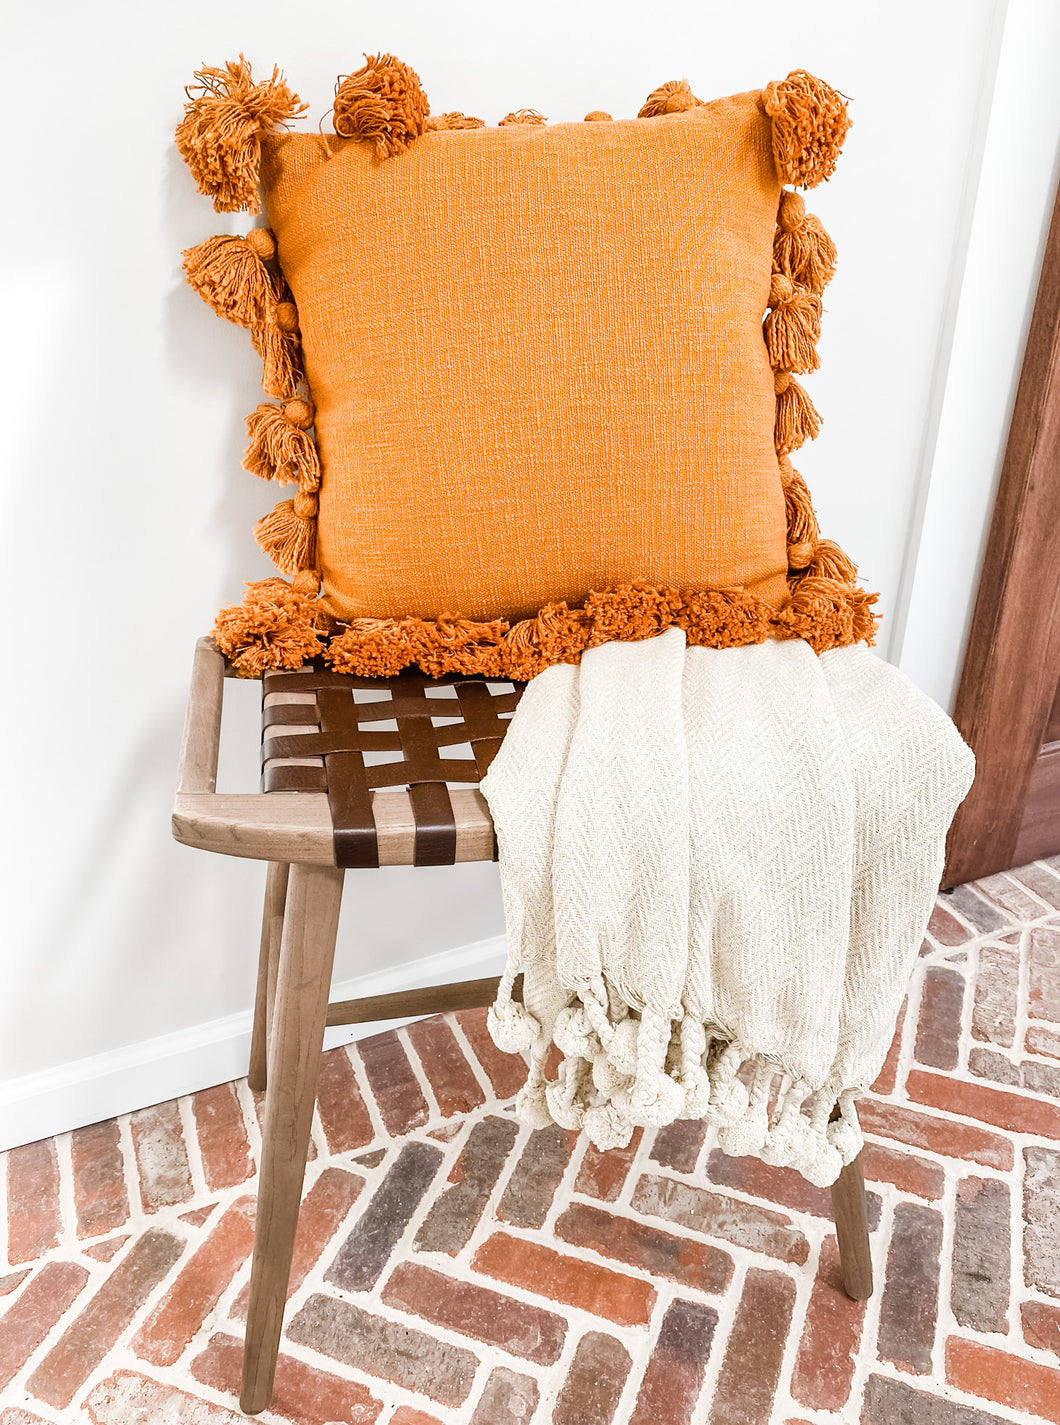 Tassel Throw Pillow in Orange - Leyland Blue